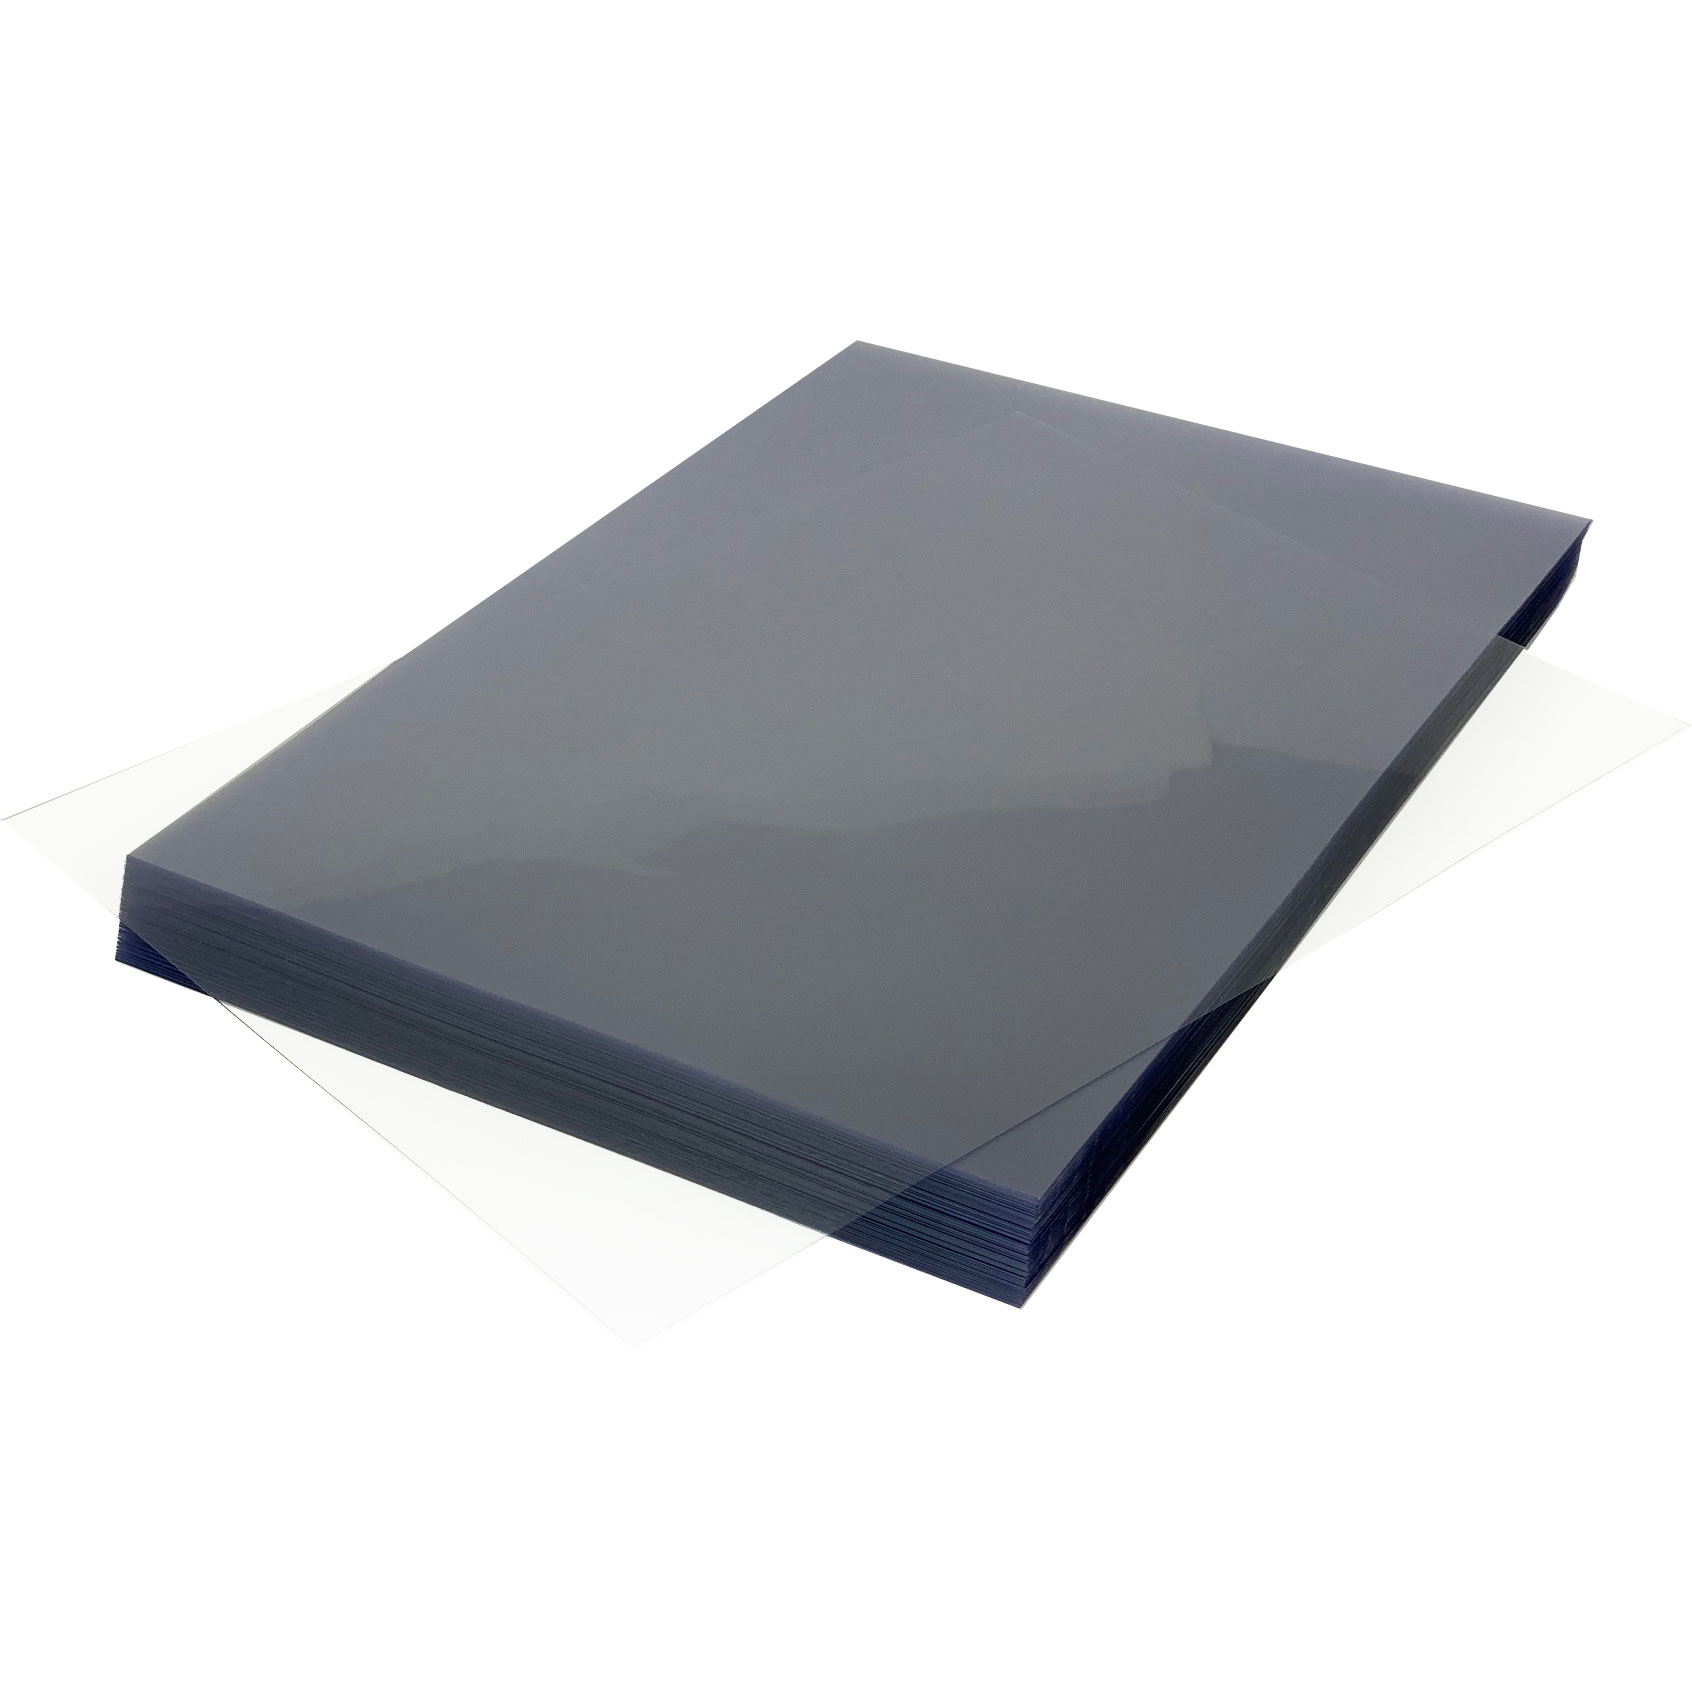 Clear PVC 240Micron A4 PPE Protective Sheets - Pack of 100